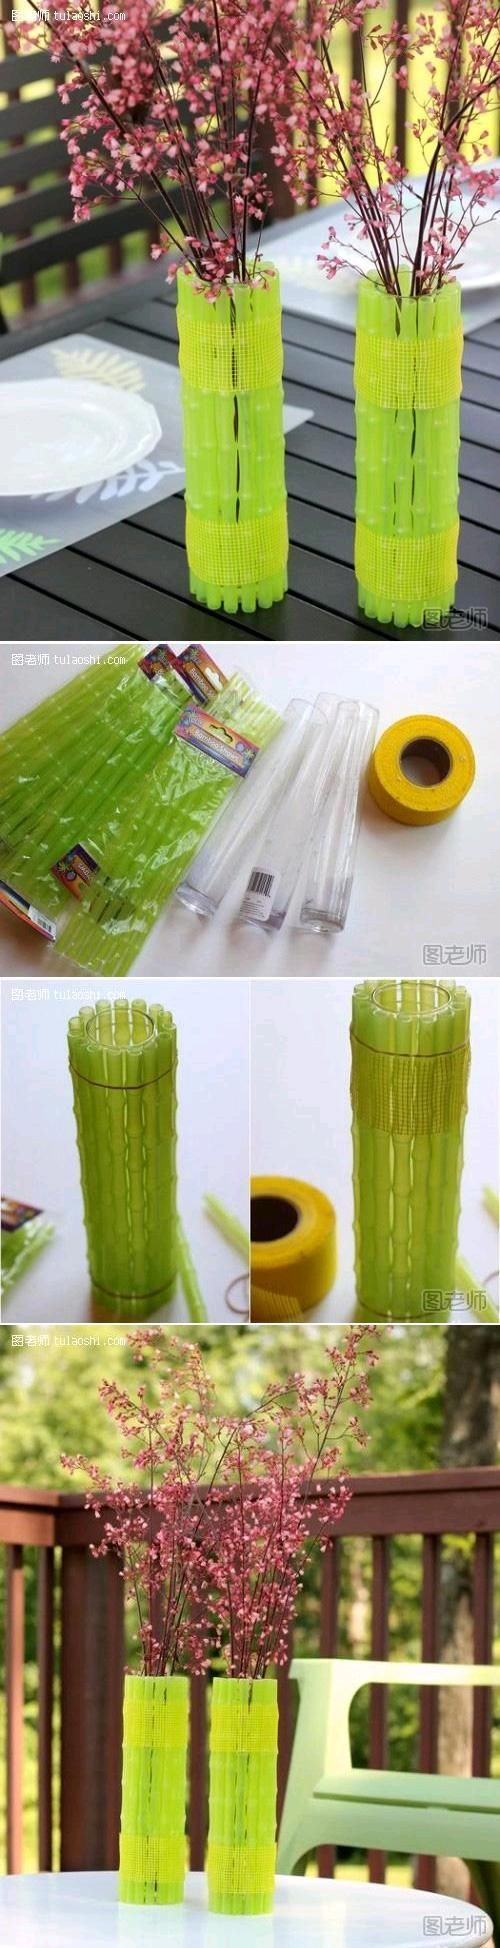 DIY Vases Pictures, Photos, and Images for Facebook, Tumblr, Pinterest, and Twitter